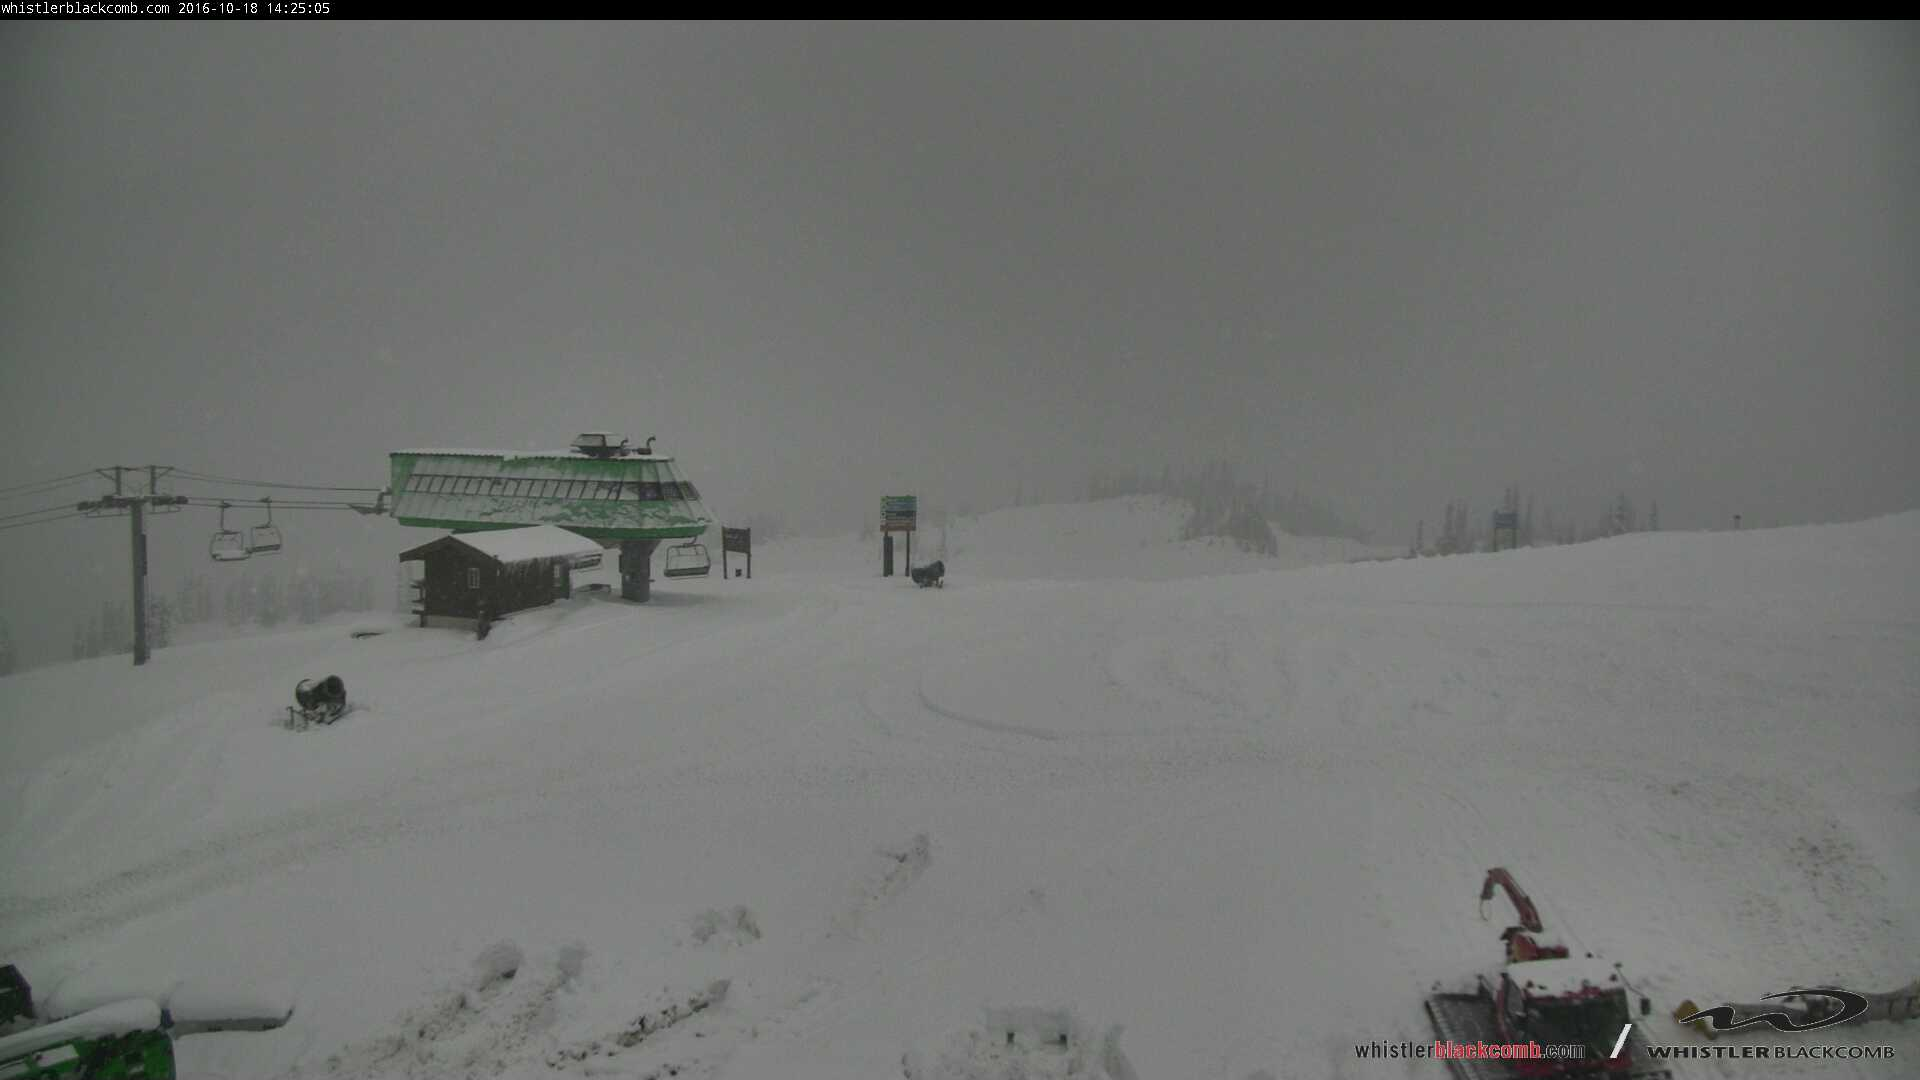 Webcam view of Emerald Chair on 18 October 2016 (Whistler Blackcomb)